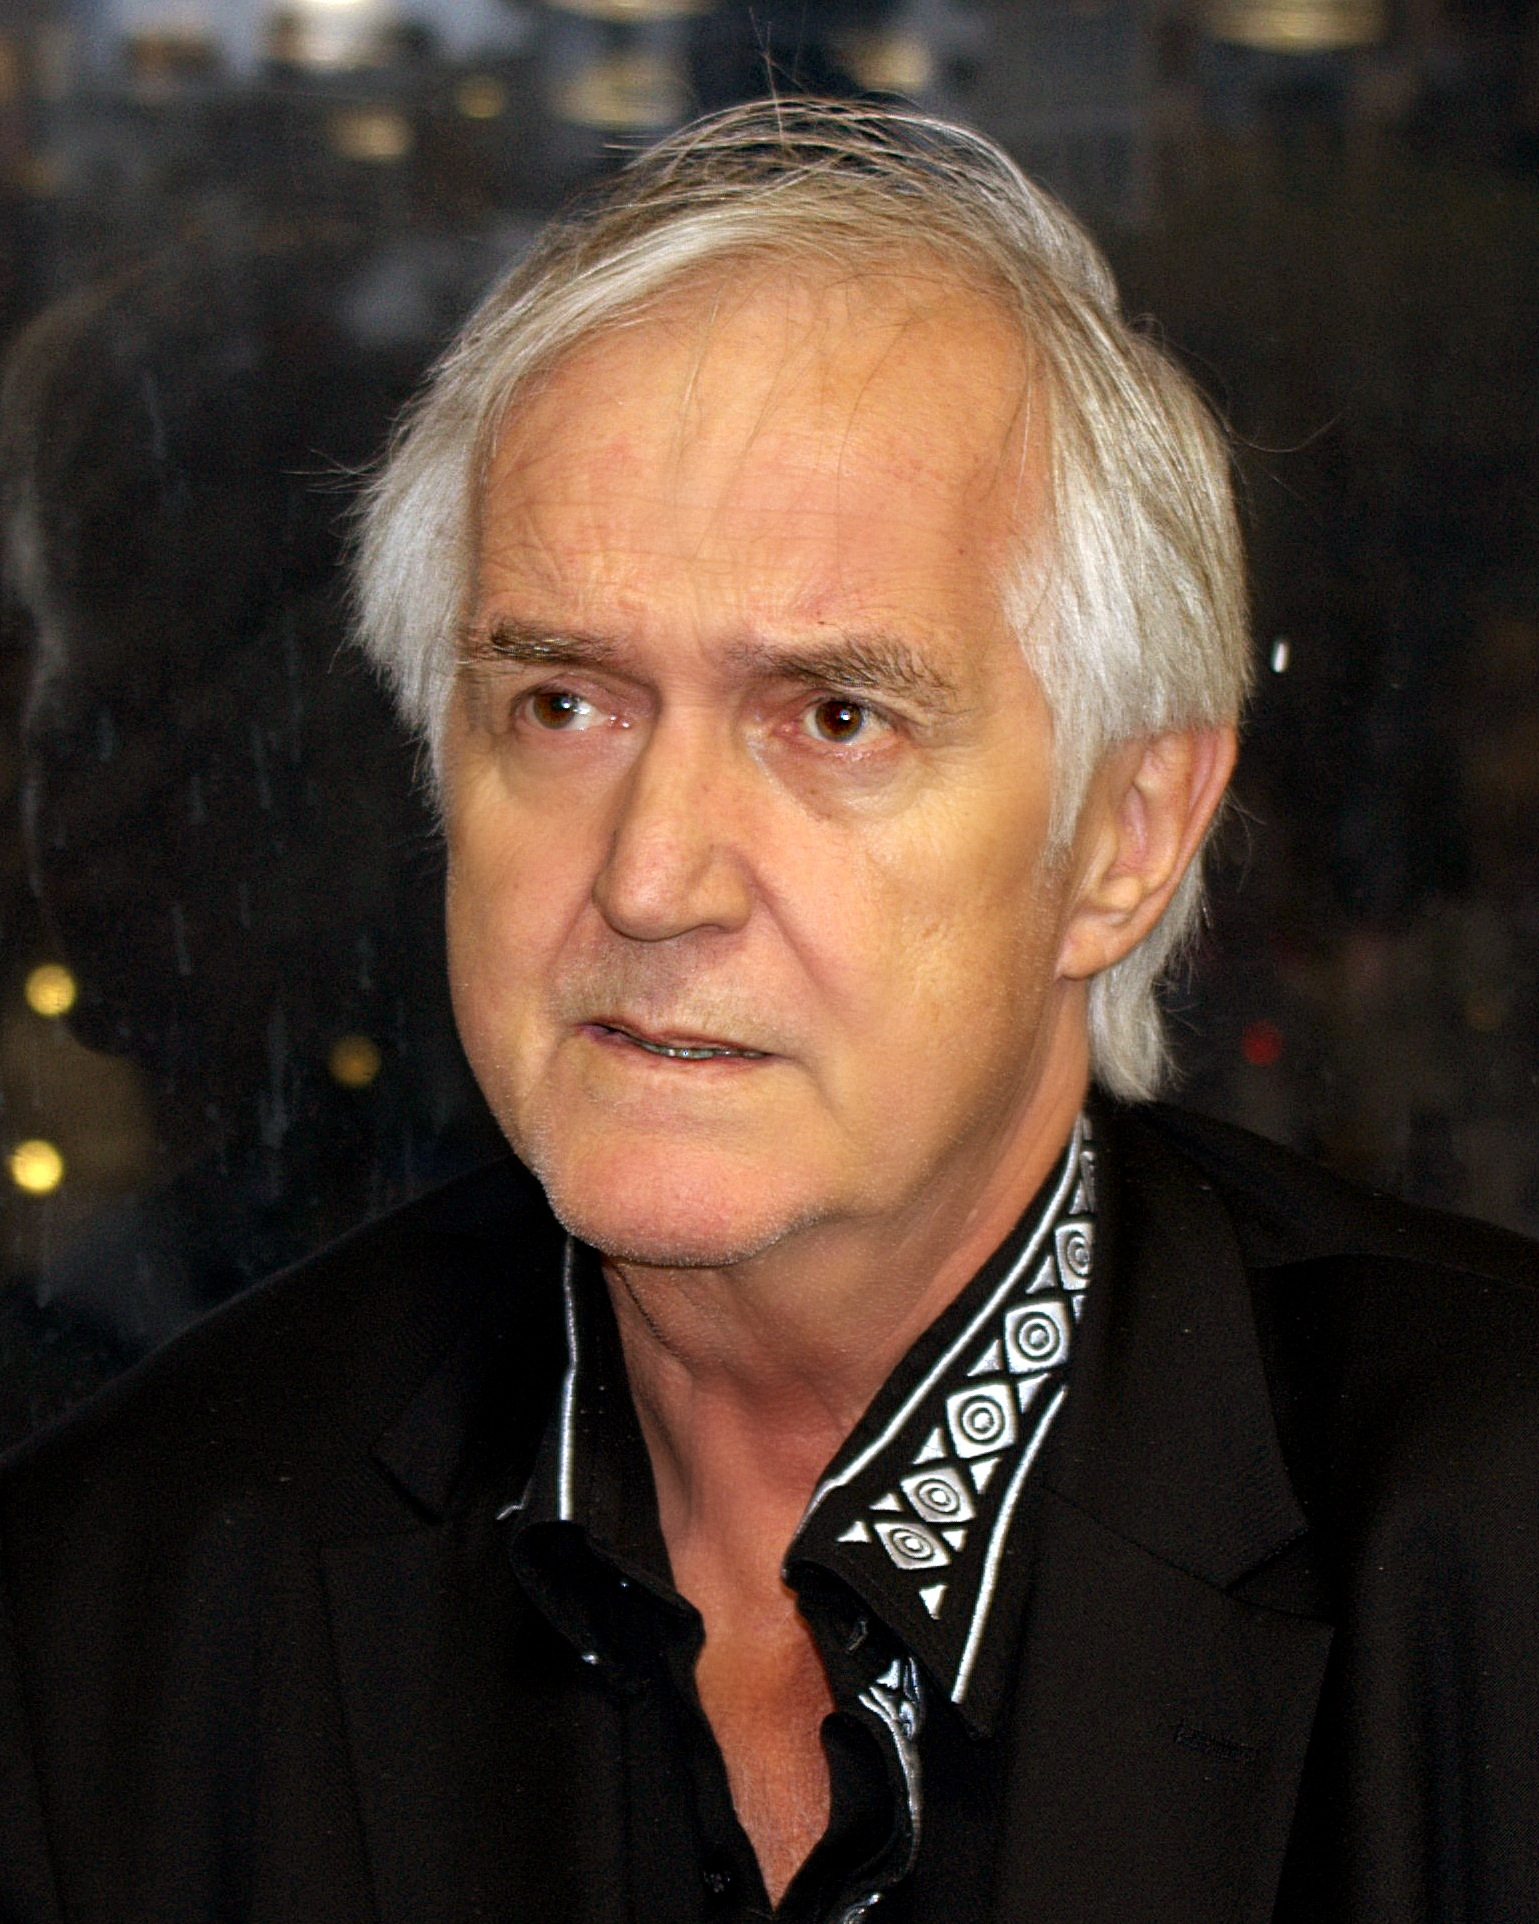 Henning Mankell's quote #6